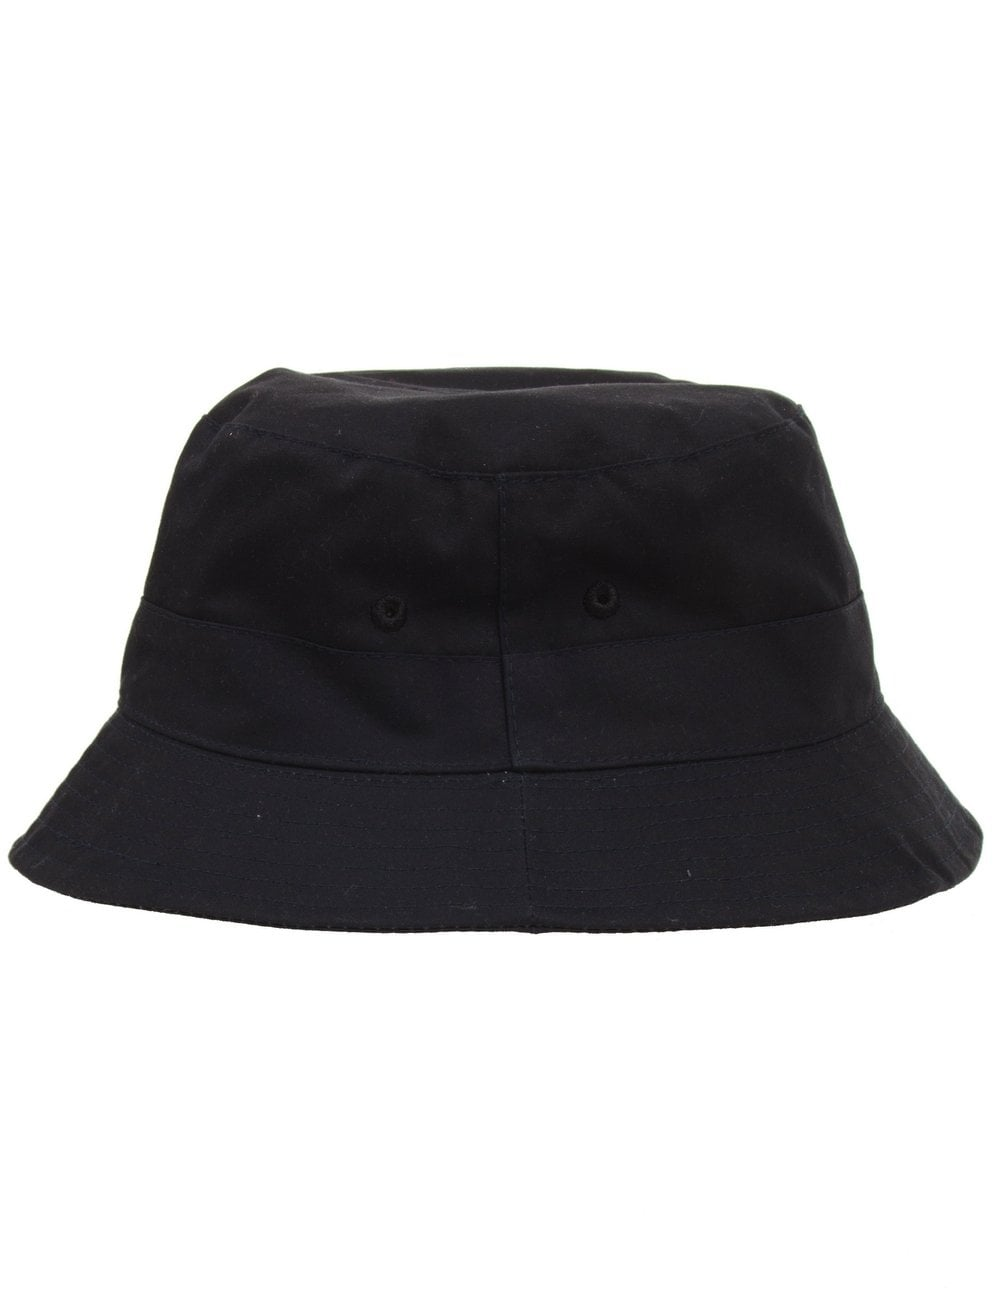 Universal Works Bucket Hat - Navy - Accessories from Fat Buddha Store UK 0abff041967